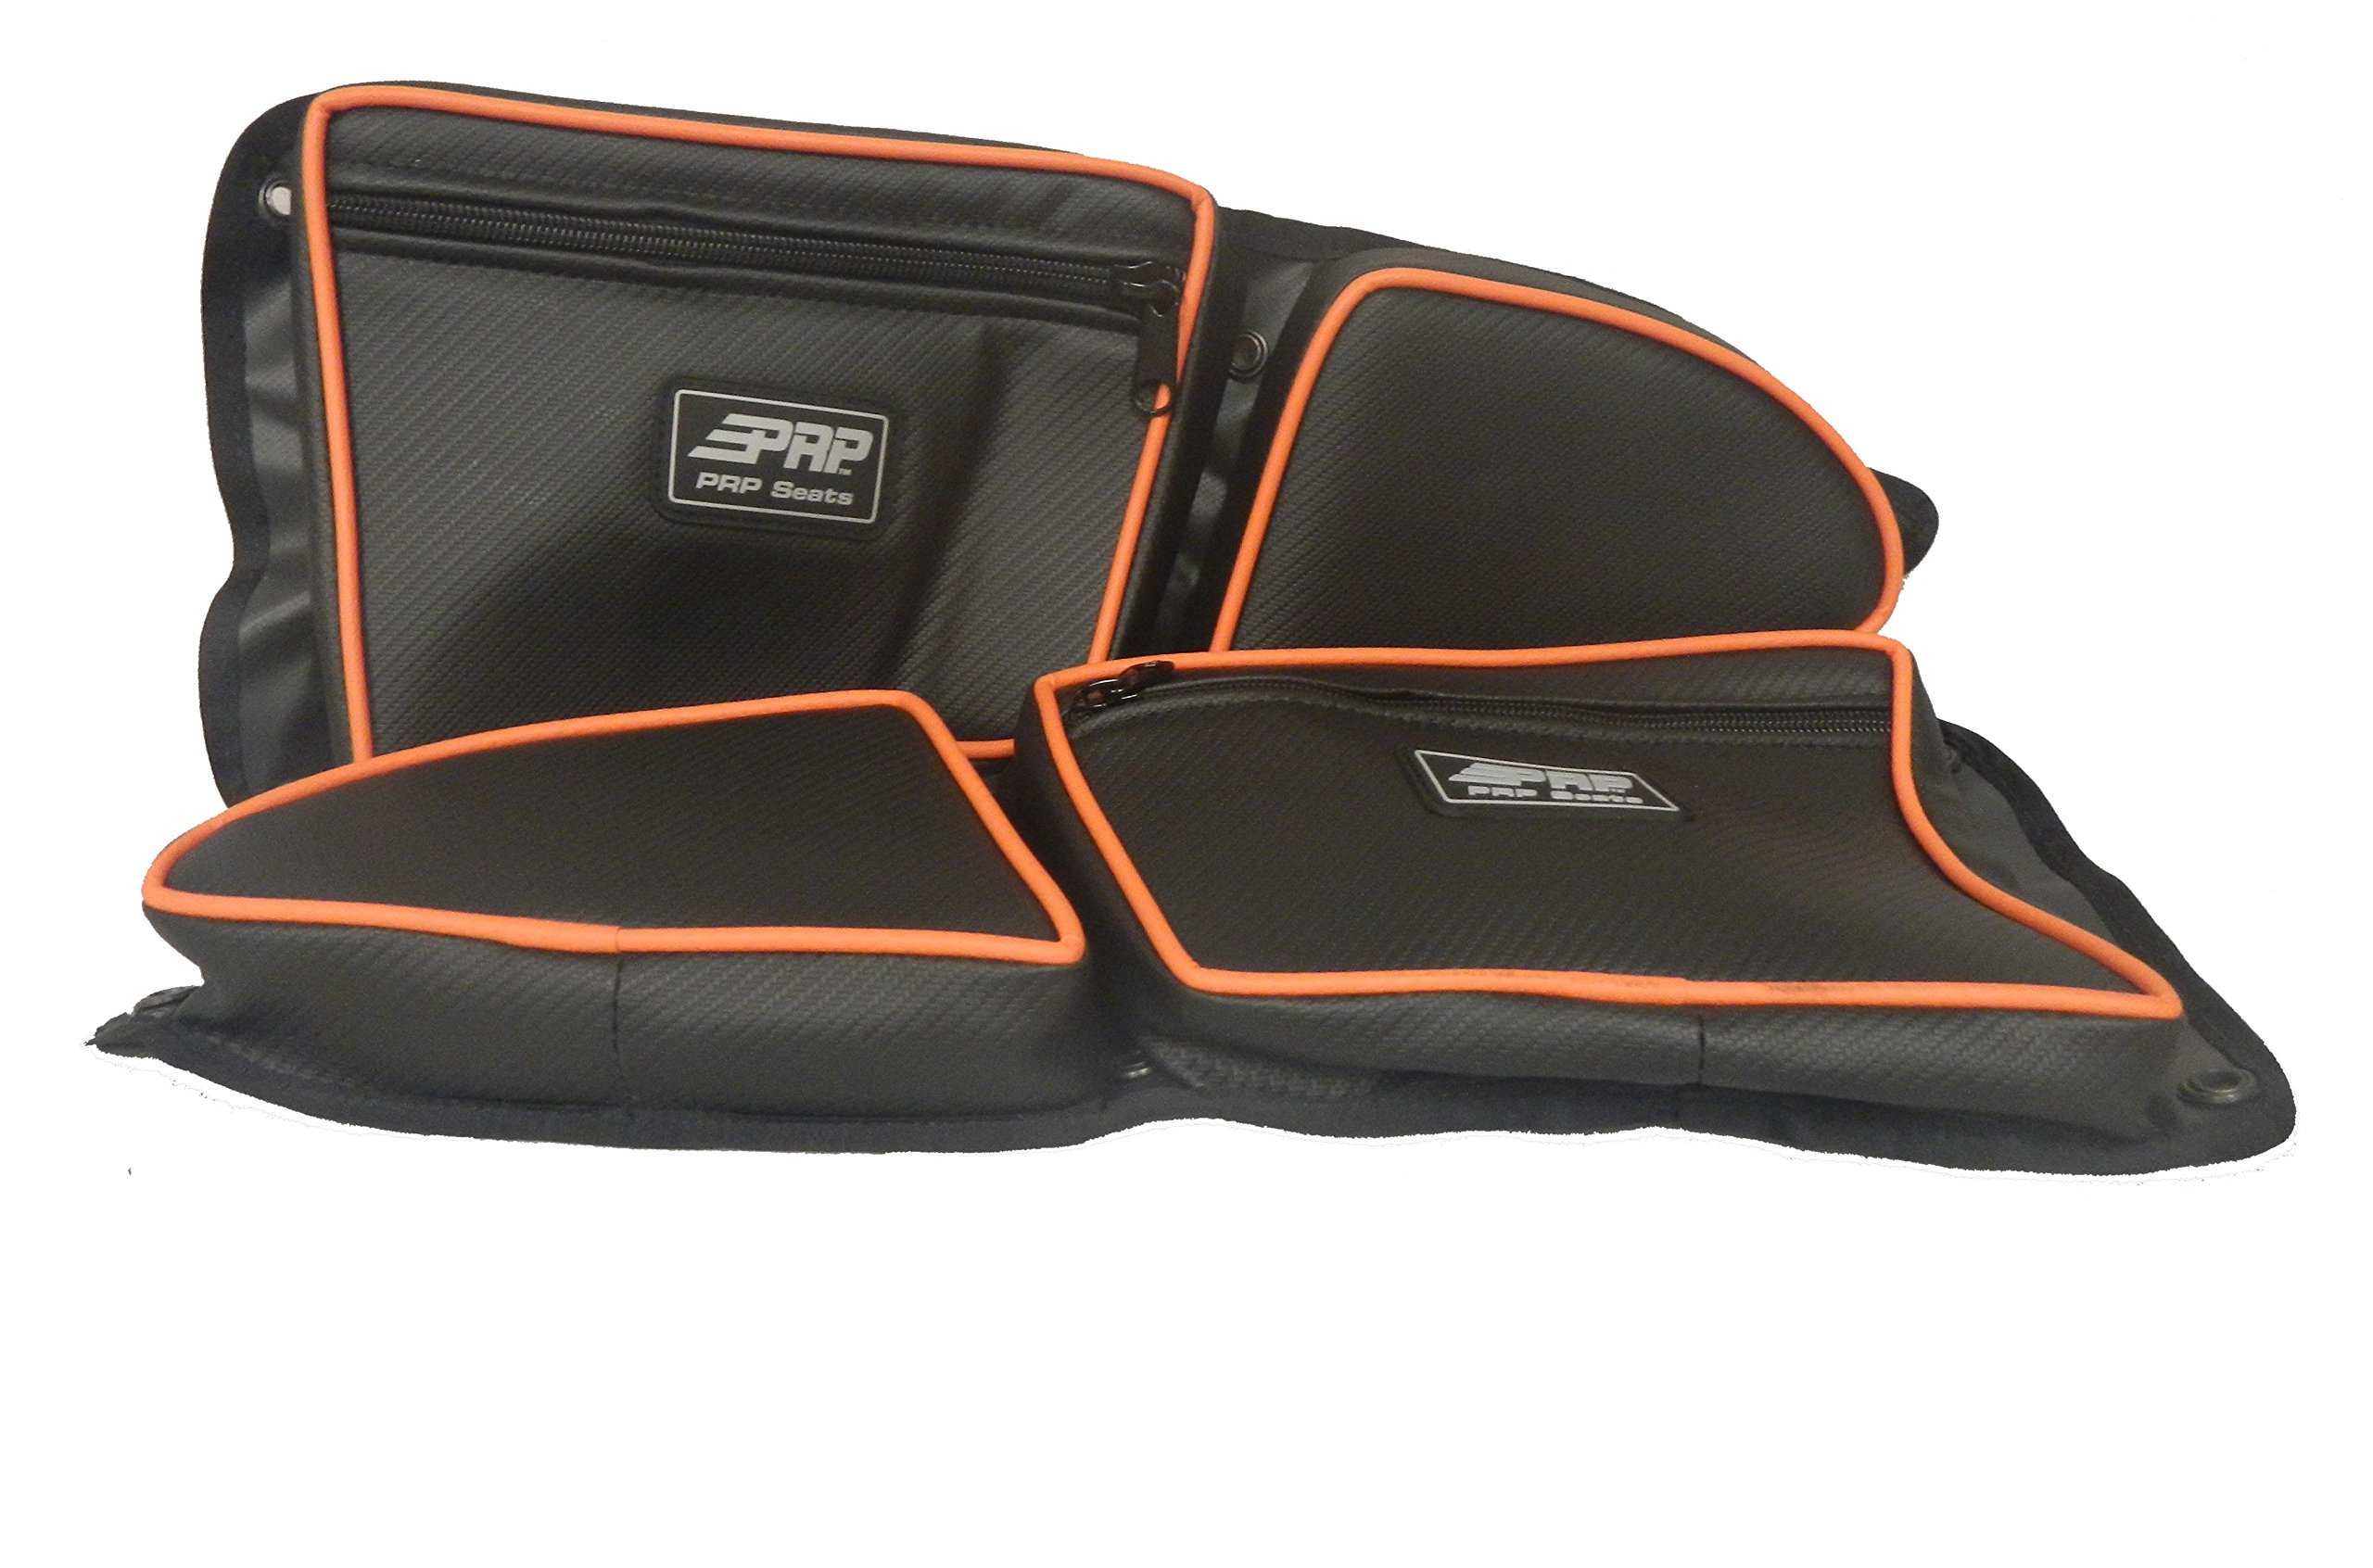 PRP Door Bags SET 2 SEATER FRONT RZR 1000 XP1K 2015+ RZR900S 900XC ORANGE PIPING #E36-37215 by Adrenaline Cycles (Image #3)